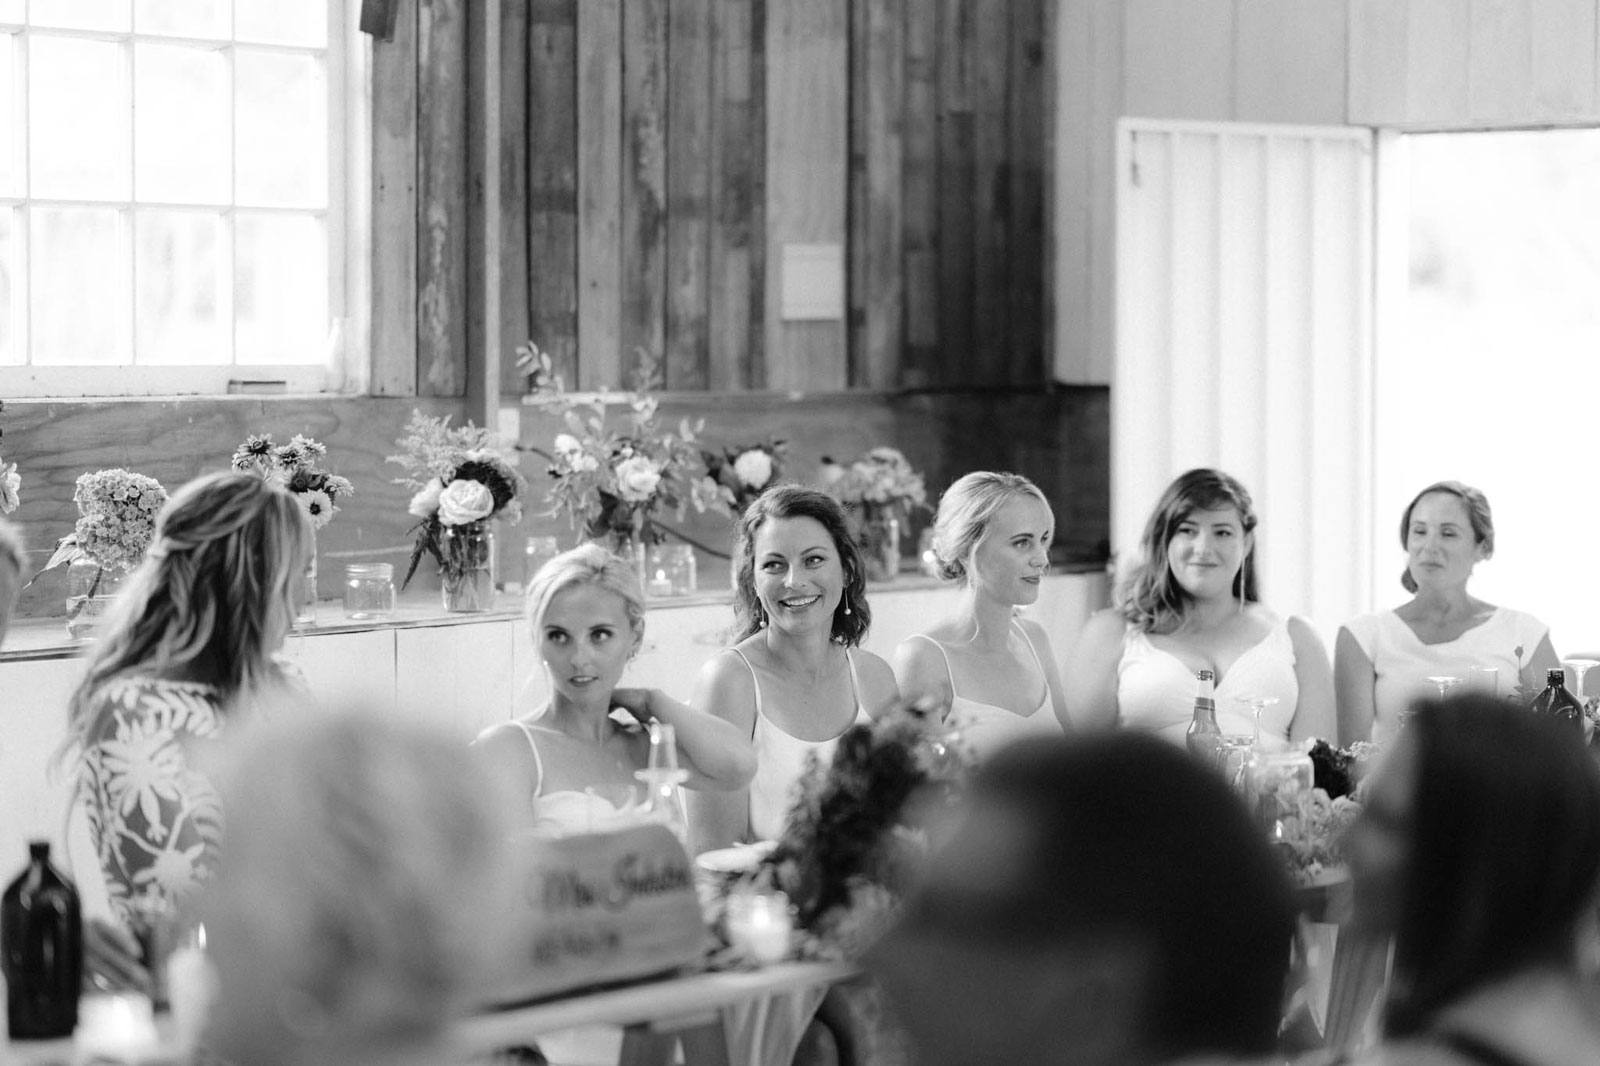 newfound-a-b-opoutere-coastal-camping-coromandel-wedding-wedding-photographer-245-a